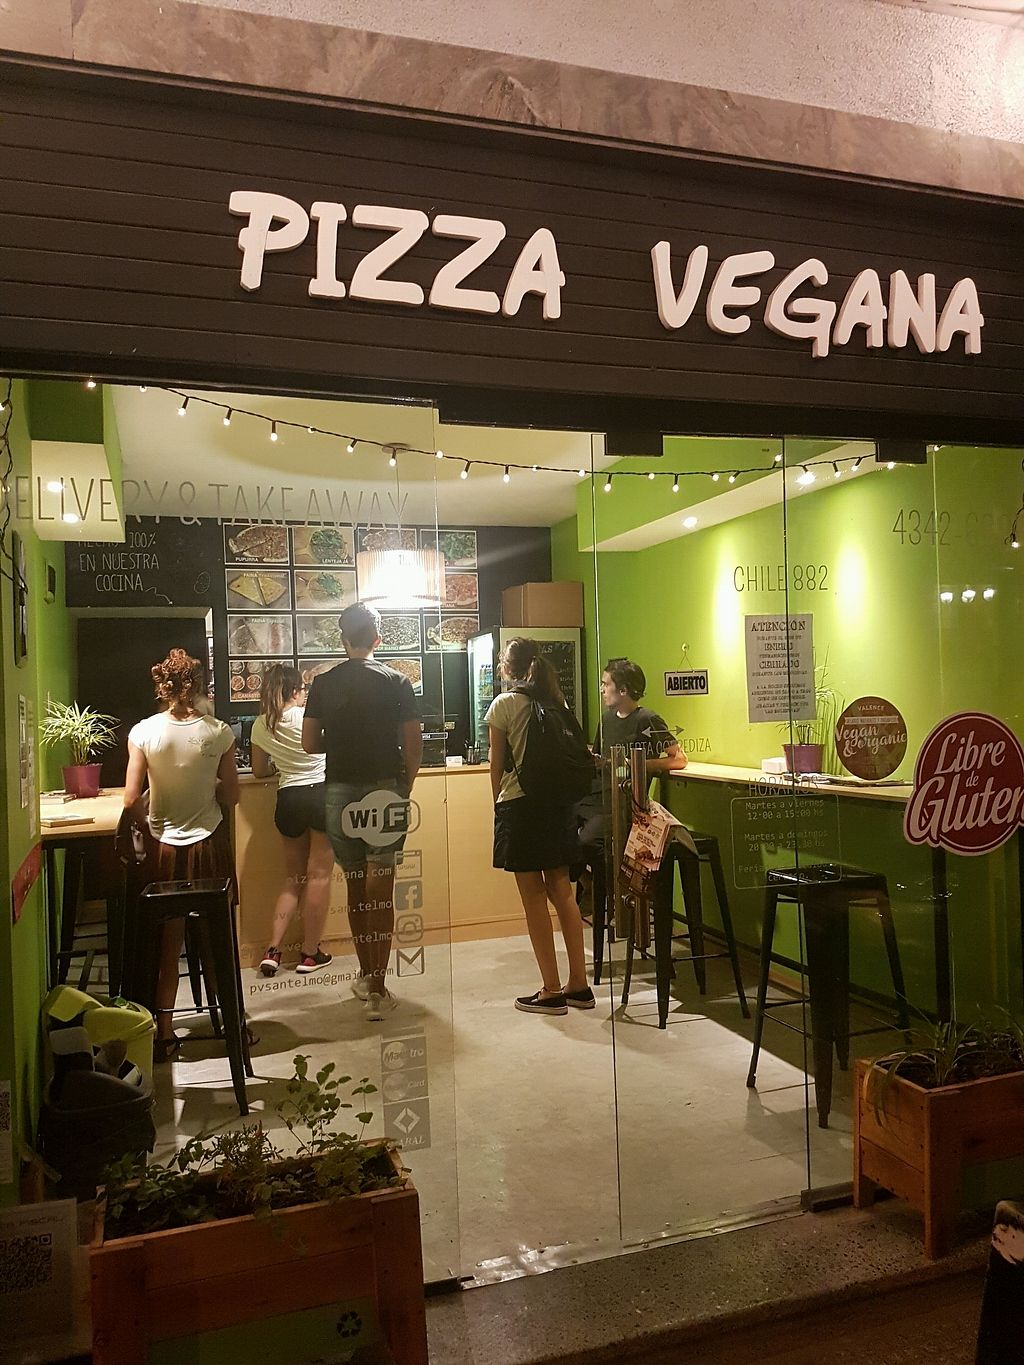 "Photo of Pizza Vegana - San Telmo   by <a href=""/members/profile/Olena"">Olena</a> <br/>from outside  <br/> April 12, 2018  - <a href='/contact/abuse/image/83905/384659'>Report</a>"